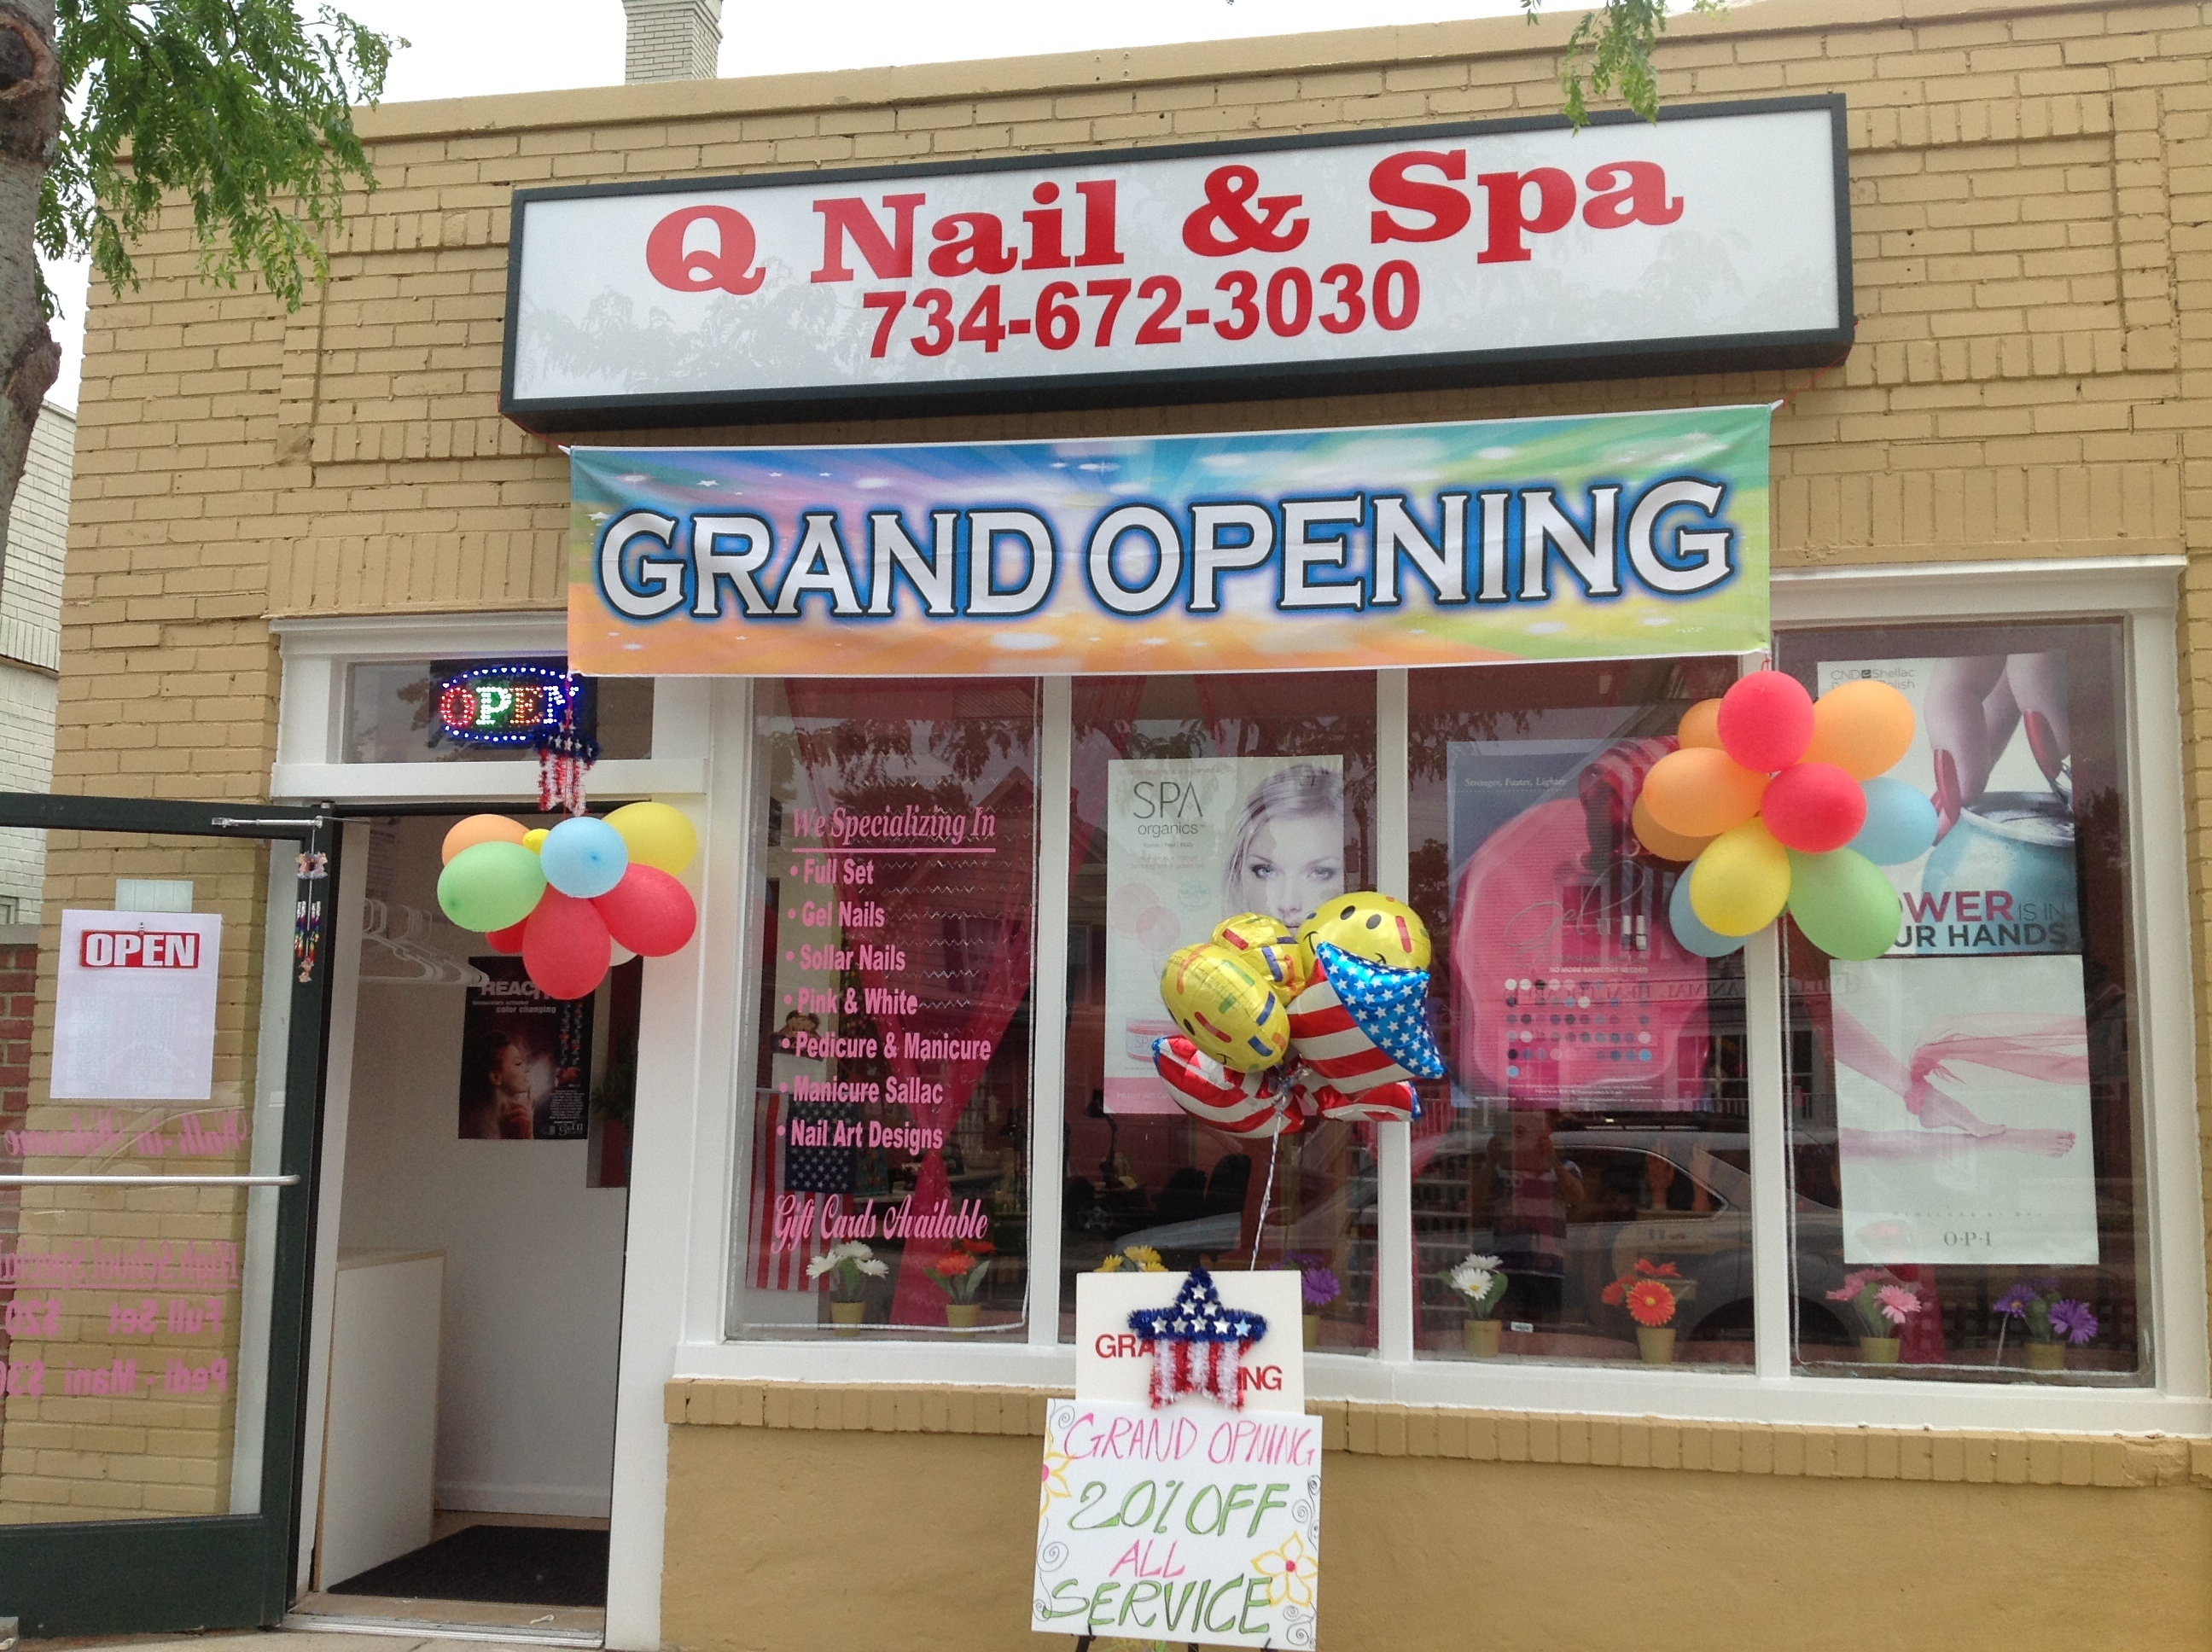 Q Nails & Spa 2455 W Jefferson ave, Trenton, MI 48183 - YP.com